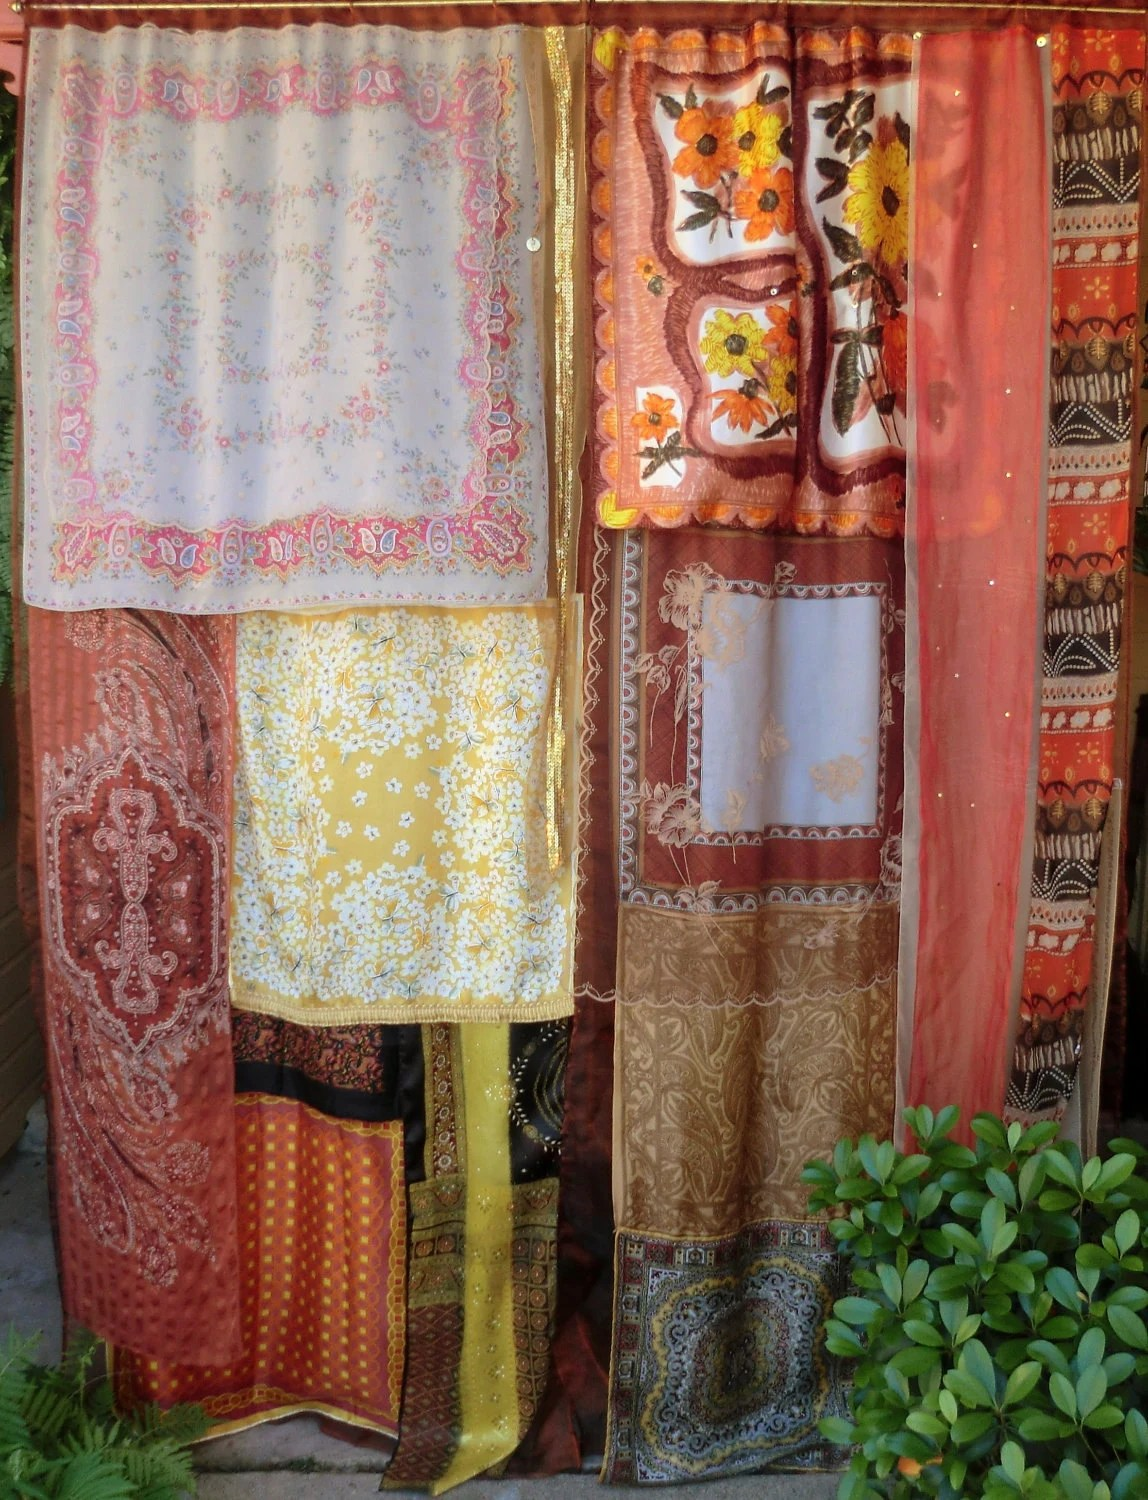 EARTHSONG Handmade Gypsy Curtains Bohemian Global Hippie